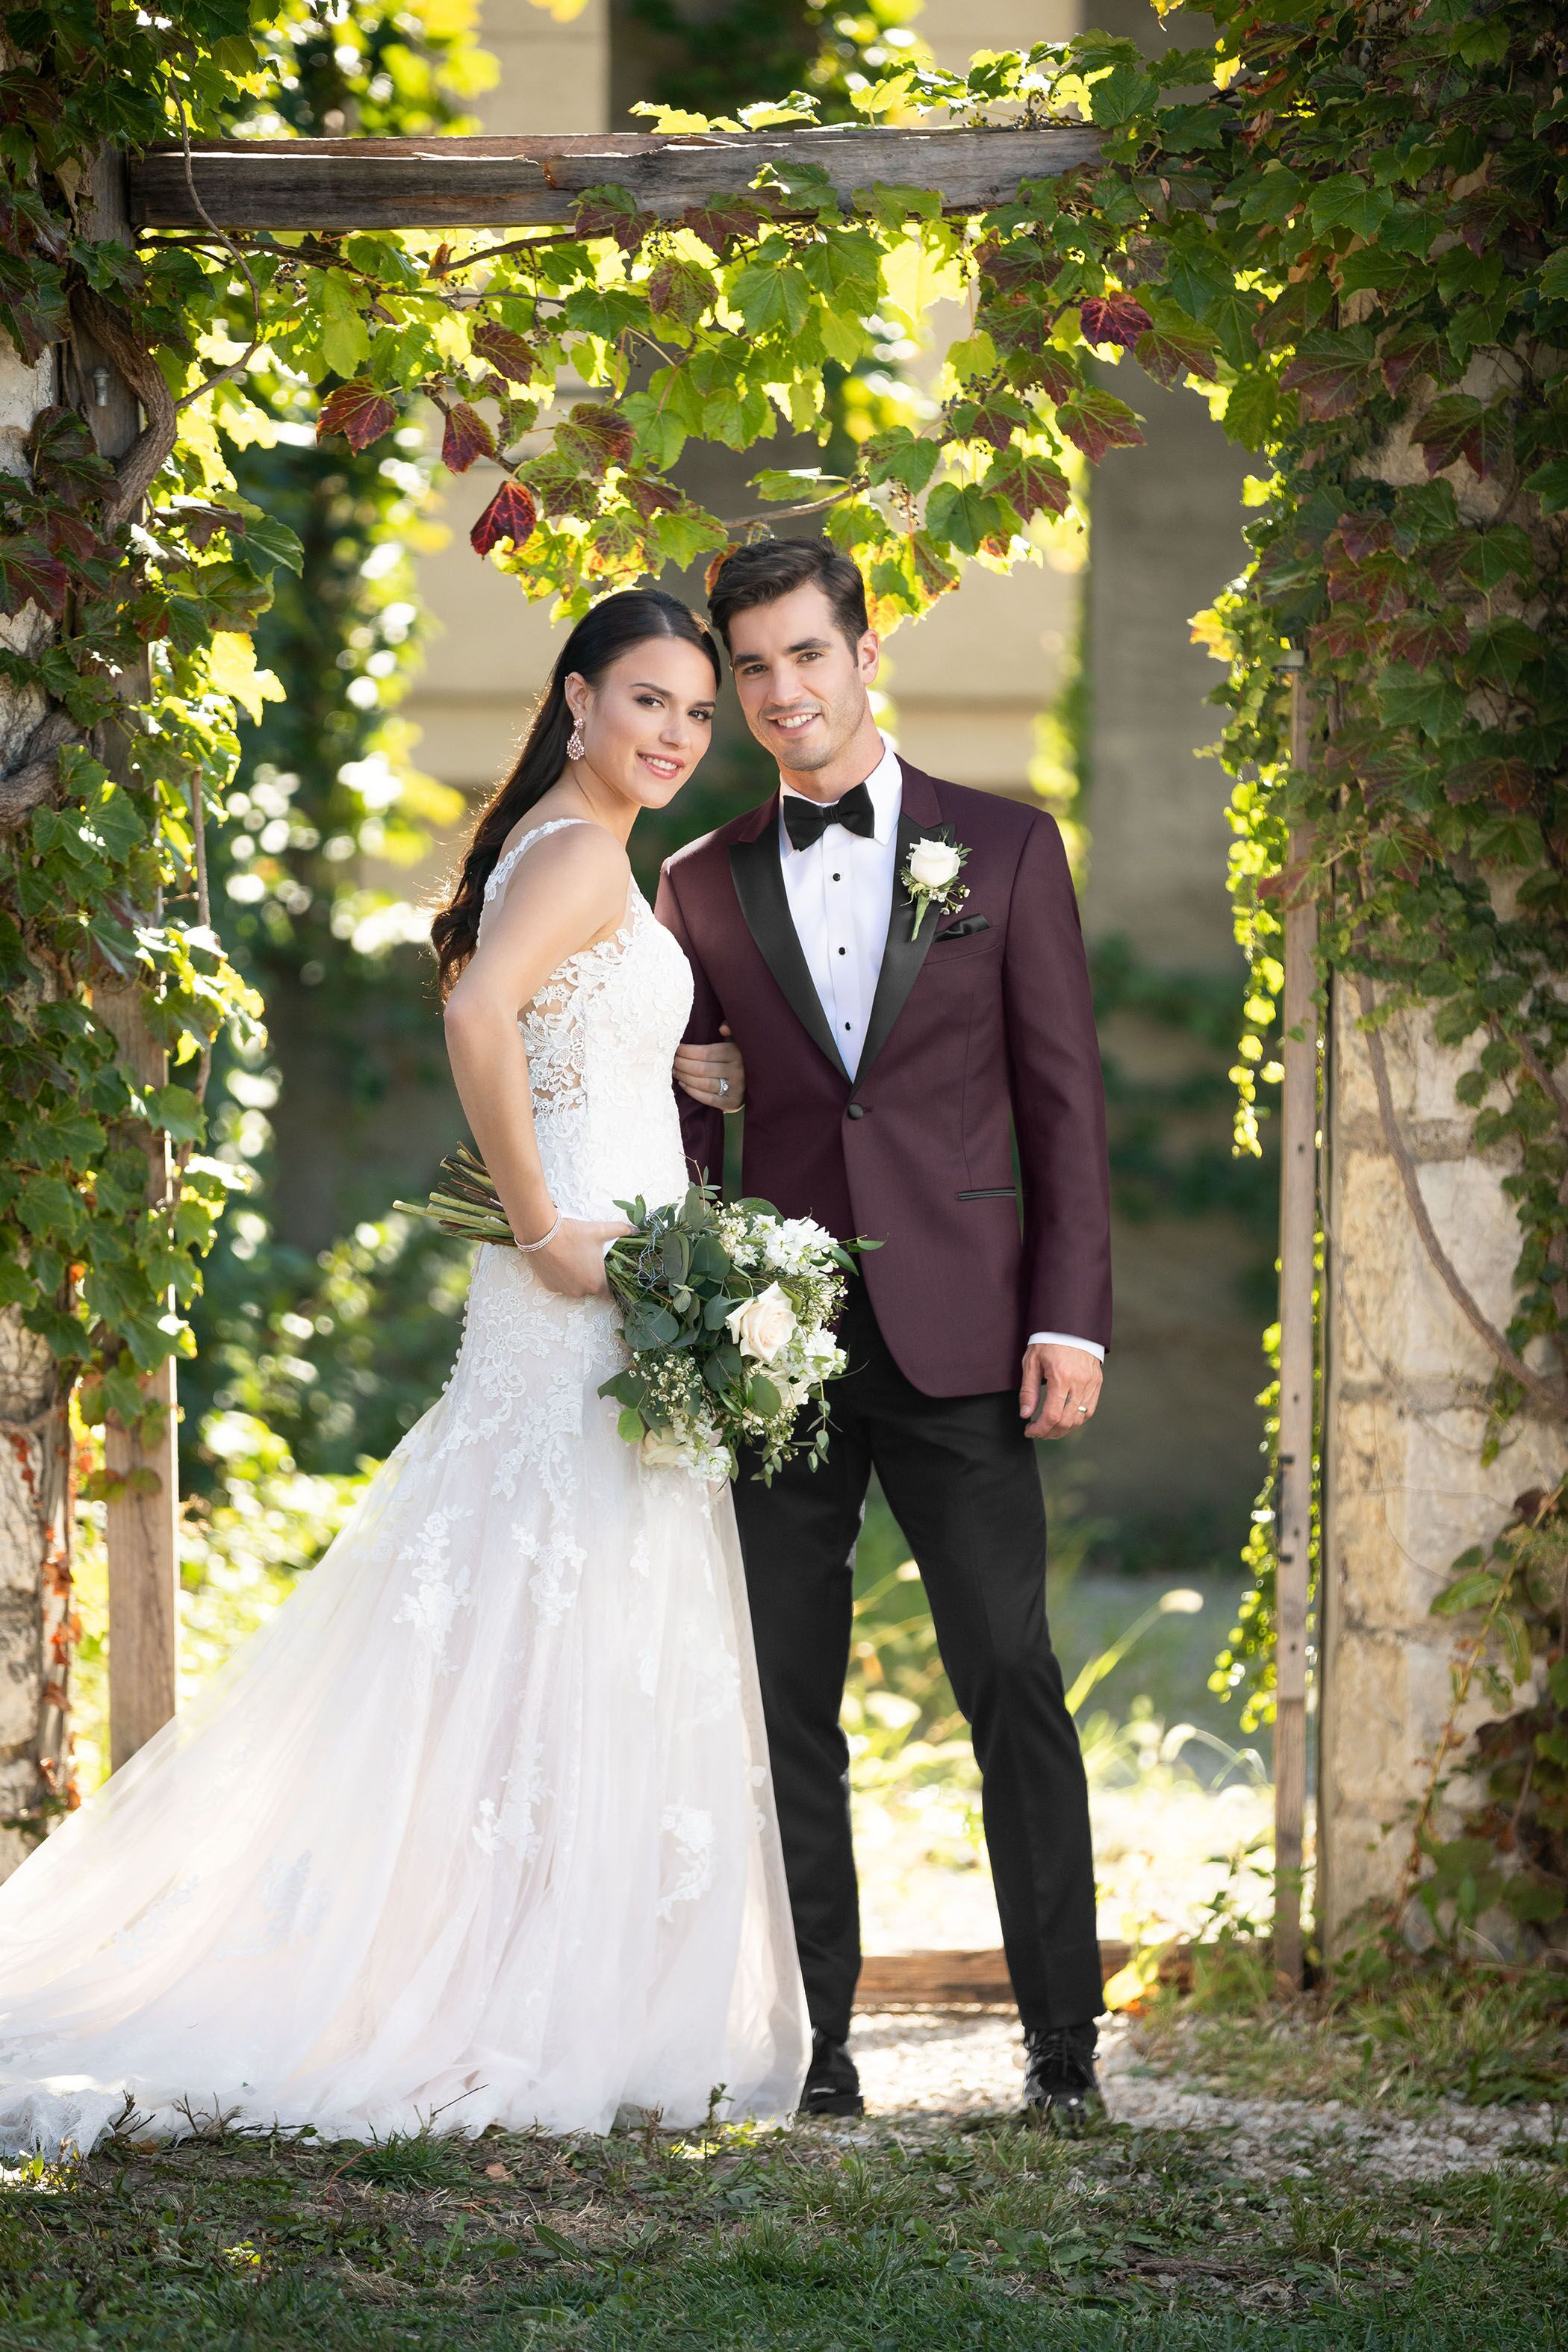 Your wedding day, your way. Build your own tux on our site